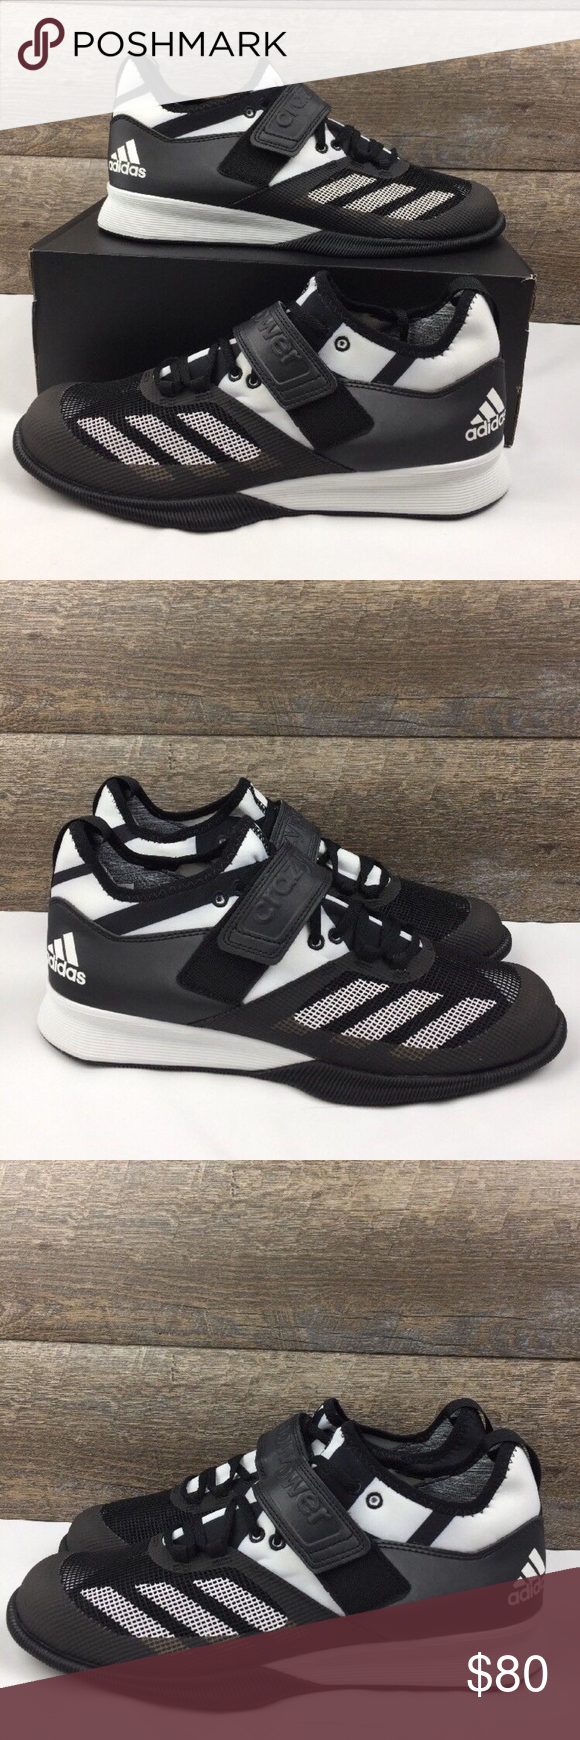 a376b0c818e7 Adidas Performance Crazy Power Weight Lift Shoes Style   BA9169 Brand new  With Box Powerlifting Shoes adidas Shoes Athletic Shoes